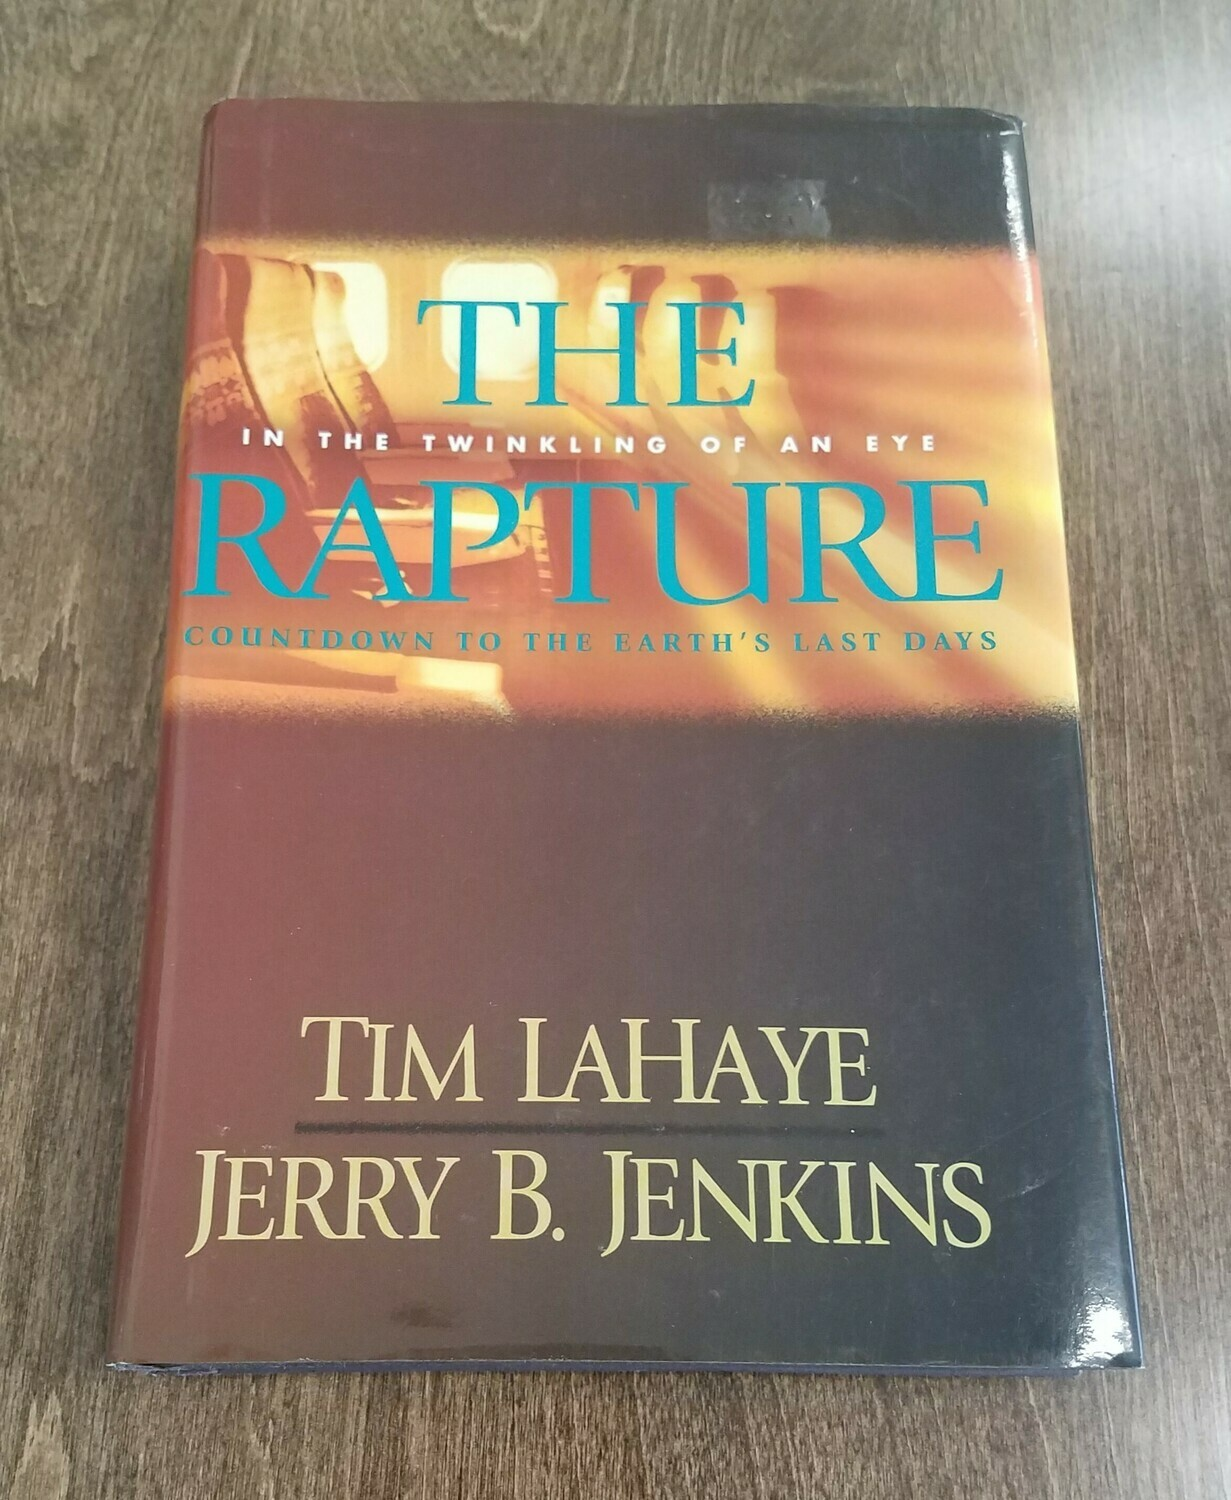 The Rapture: In the Twinkle of An Eye by Tim LaHaye and Jerry B. Jenkins